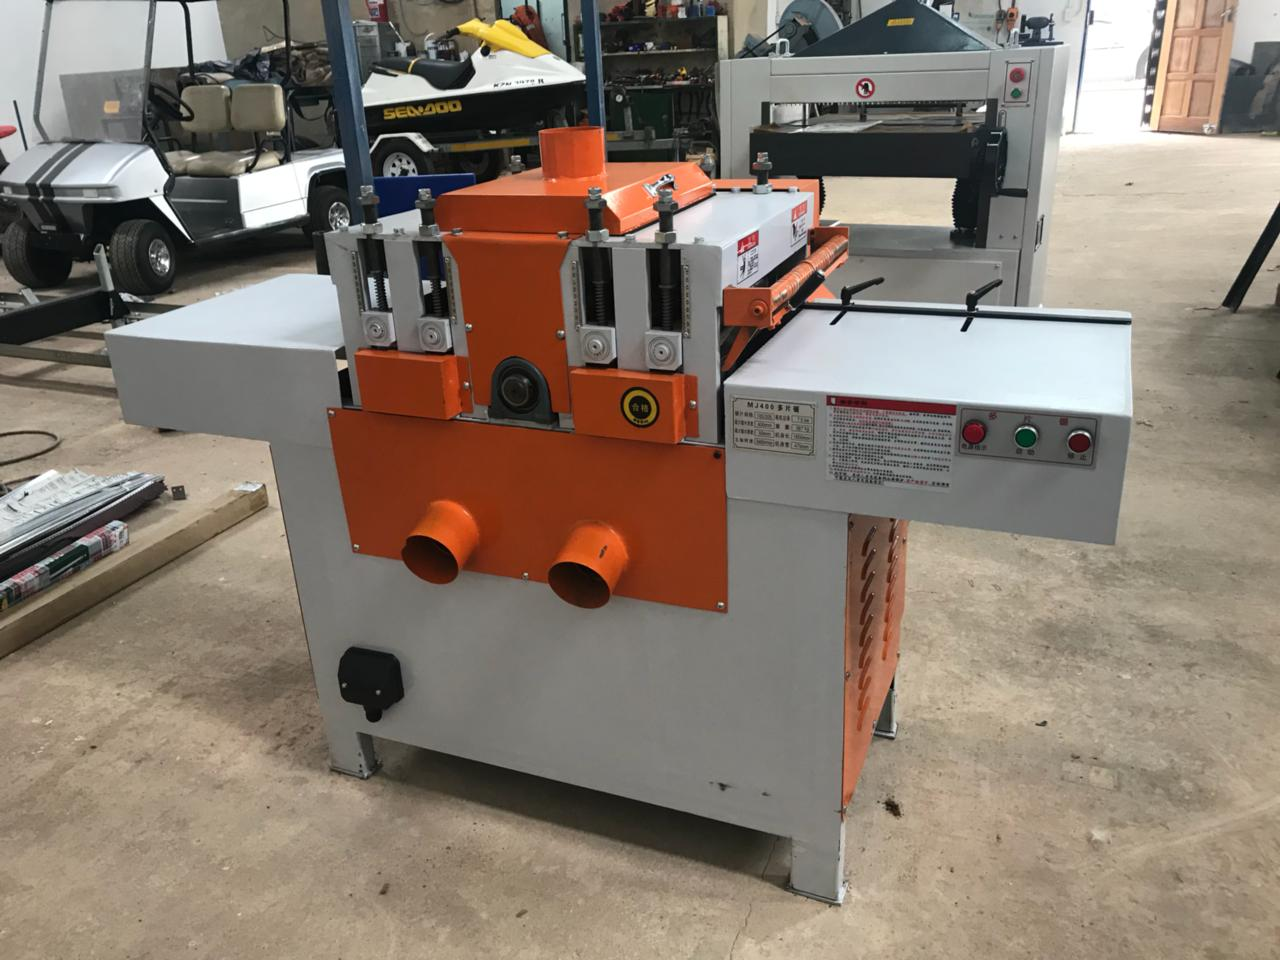 Board Edger, ROOSMAC, MJ400, 7.5 kW, 400 x 50 mm